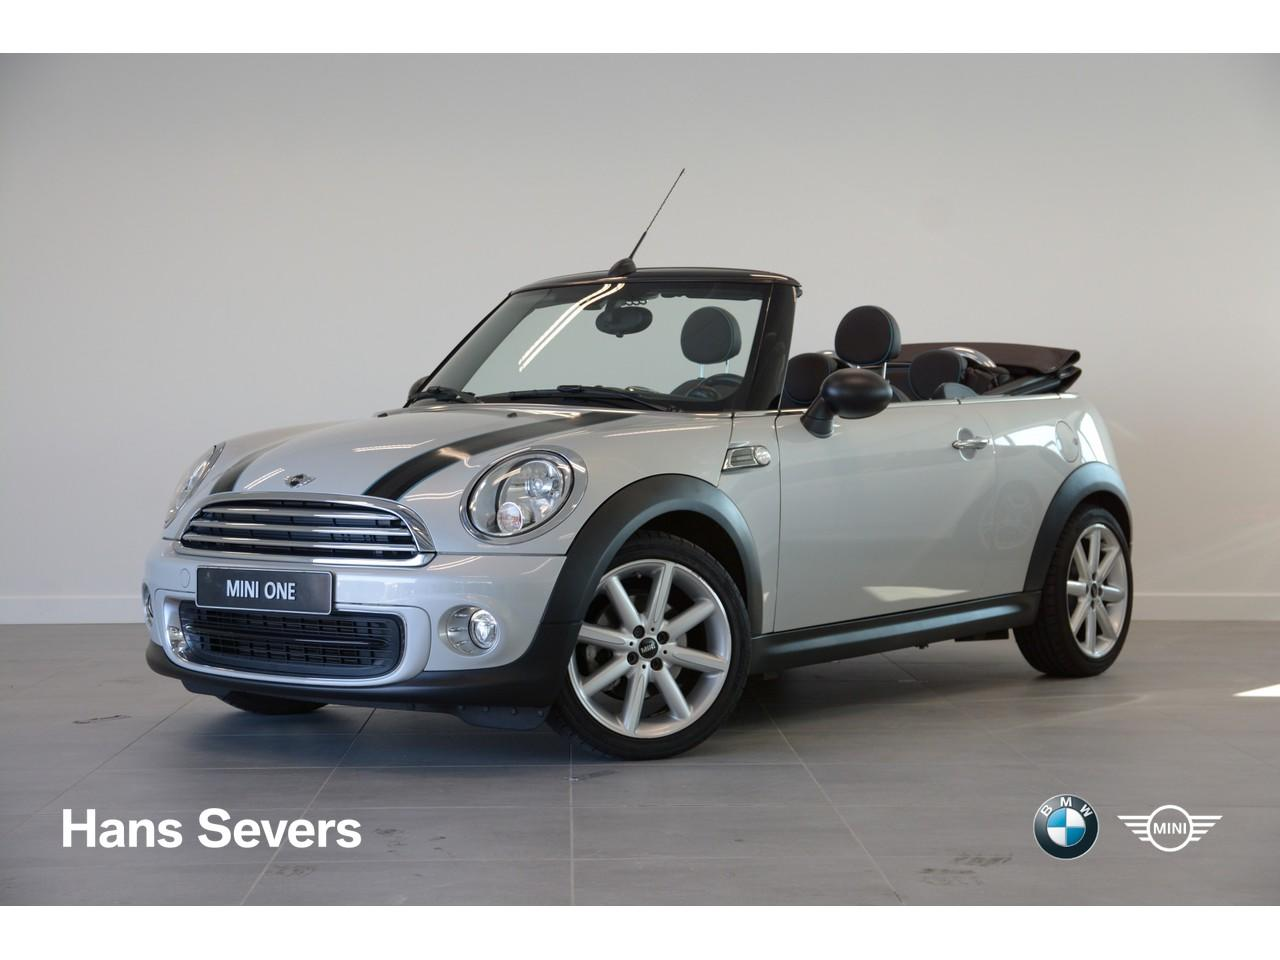 Mini Cabrio 1.6 one highgate